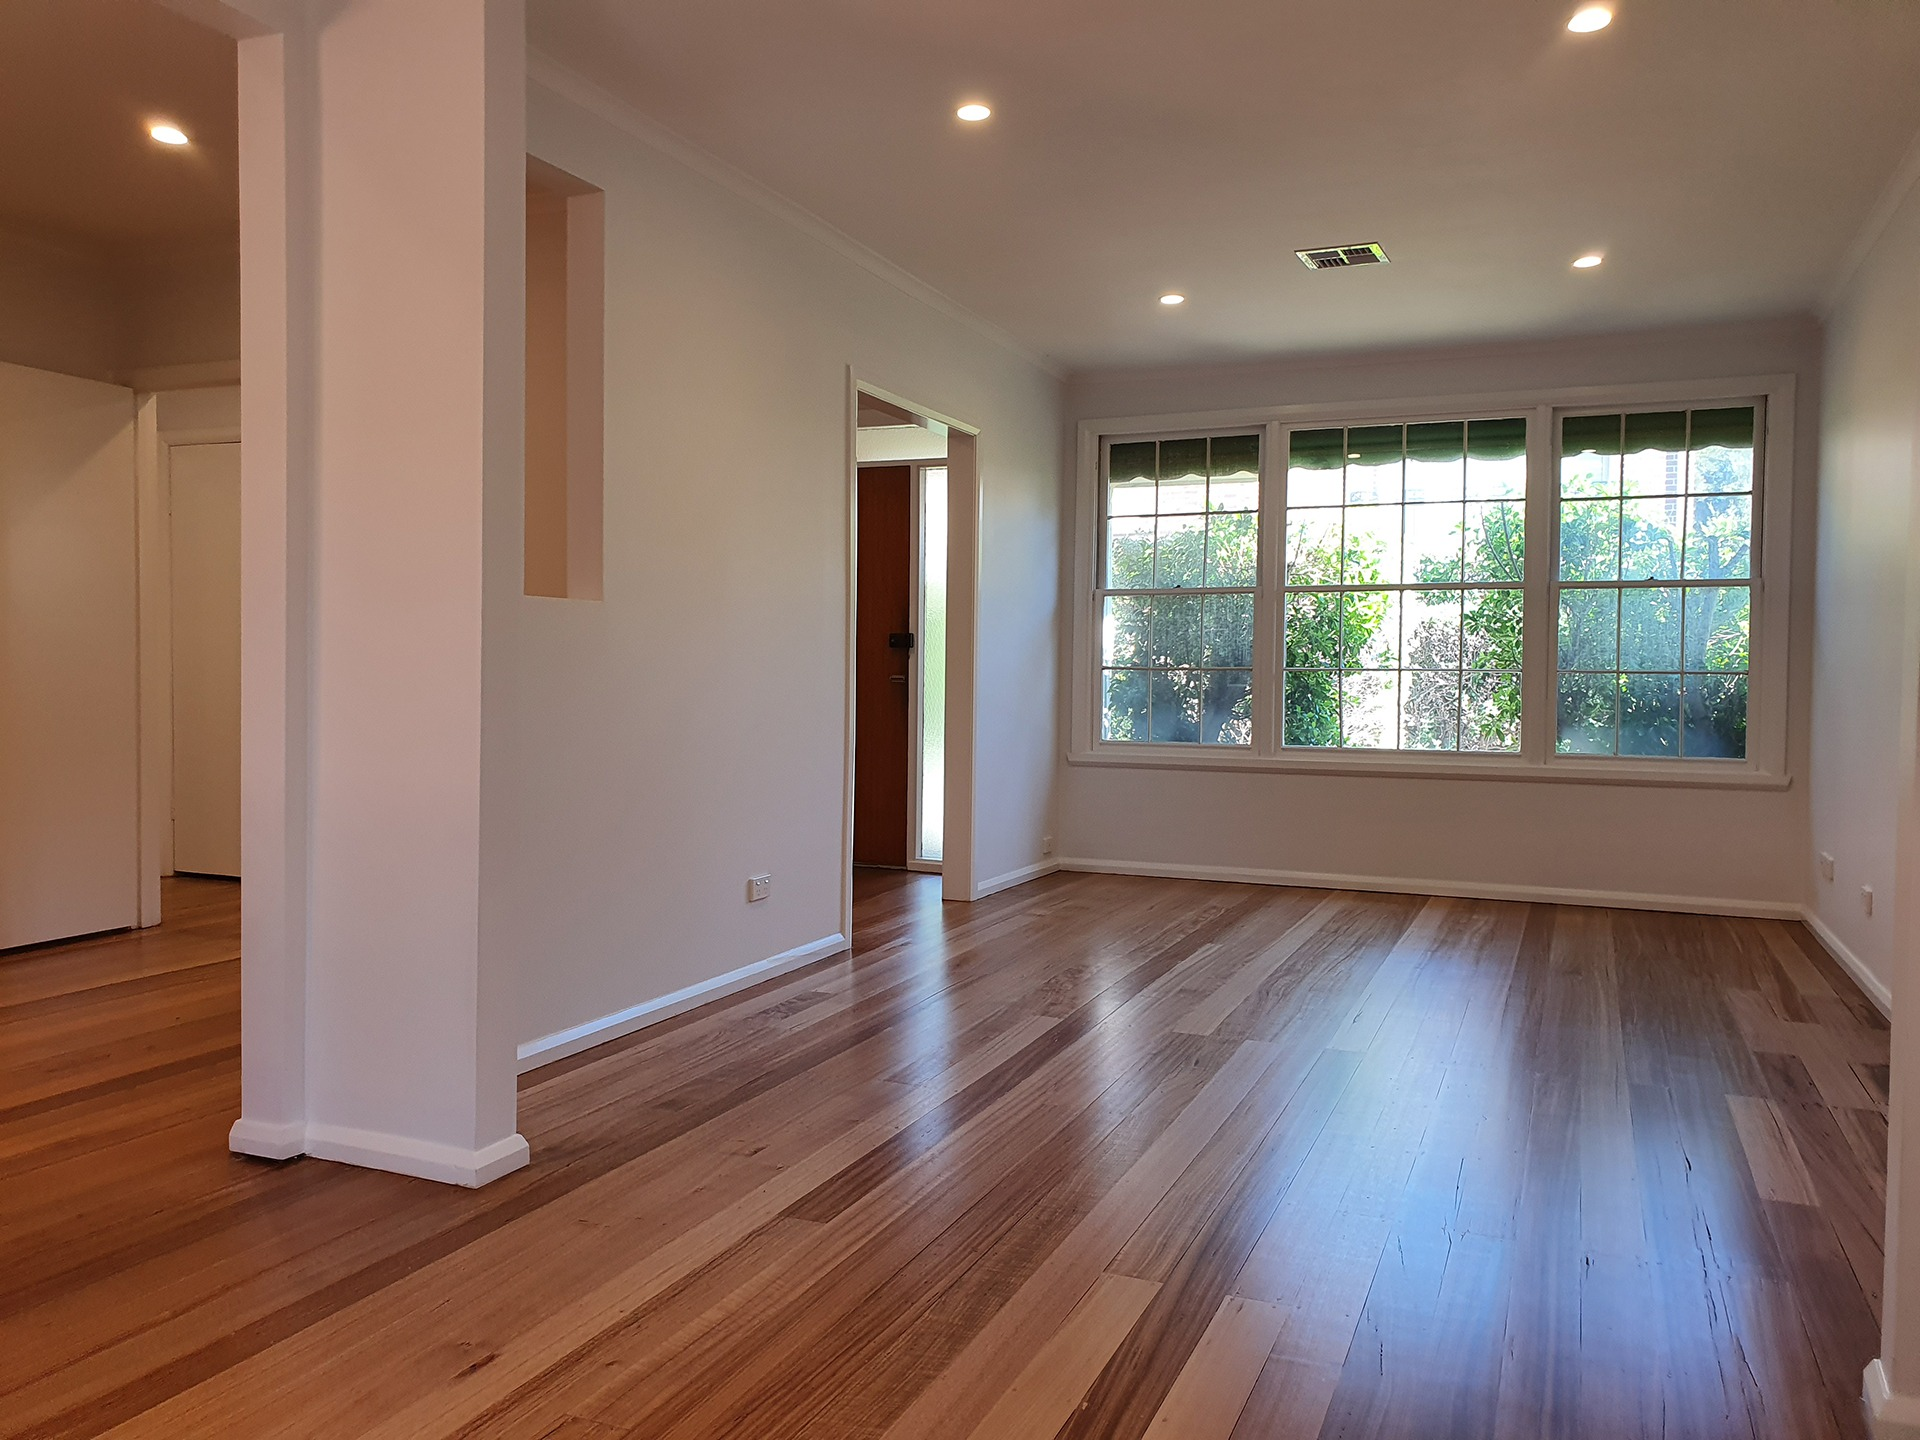 Home Renovations Services - Bayview Renovations